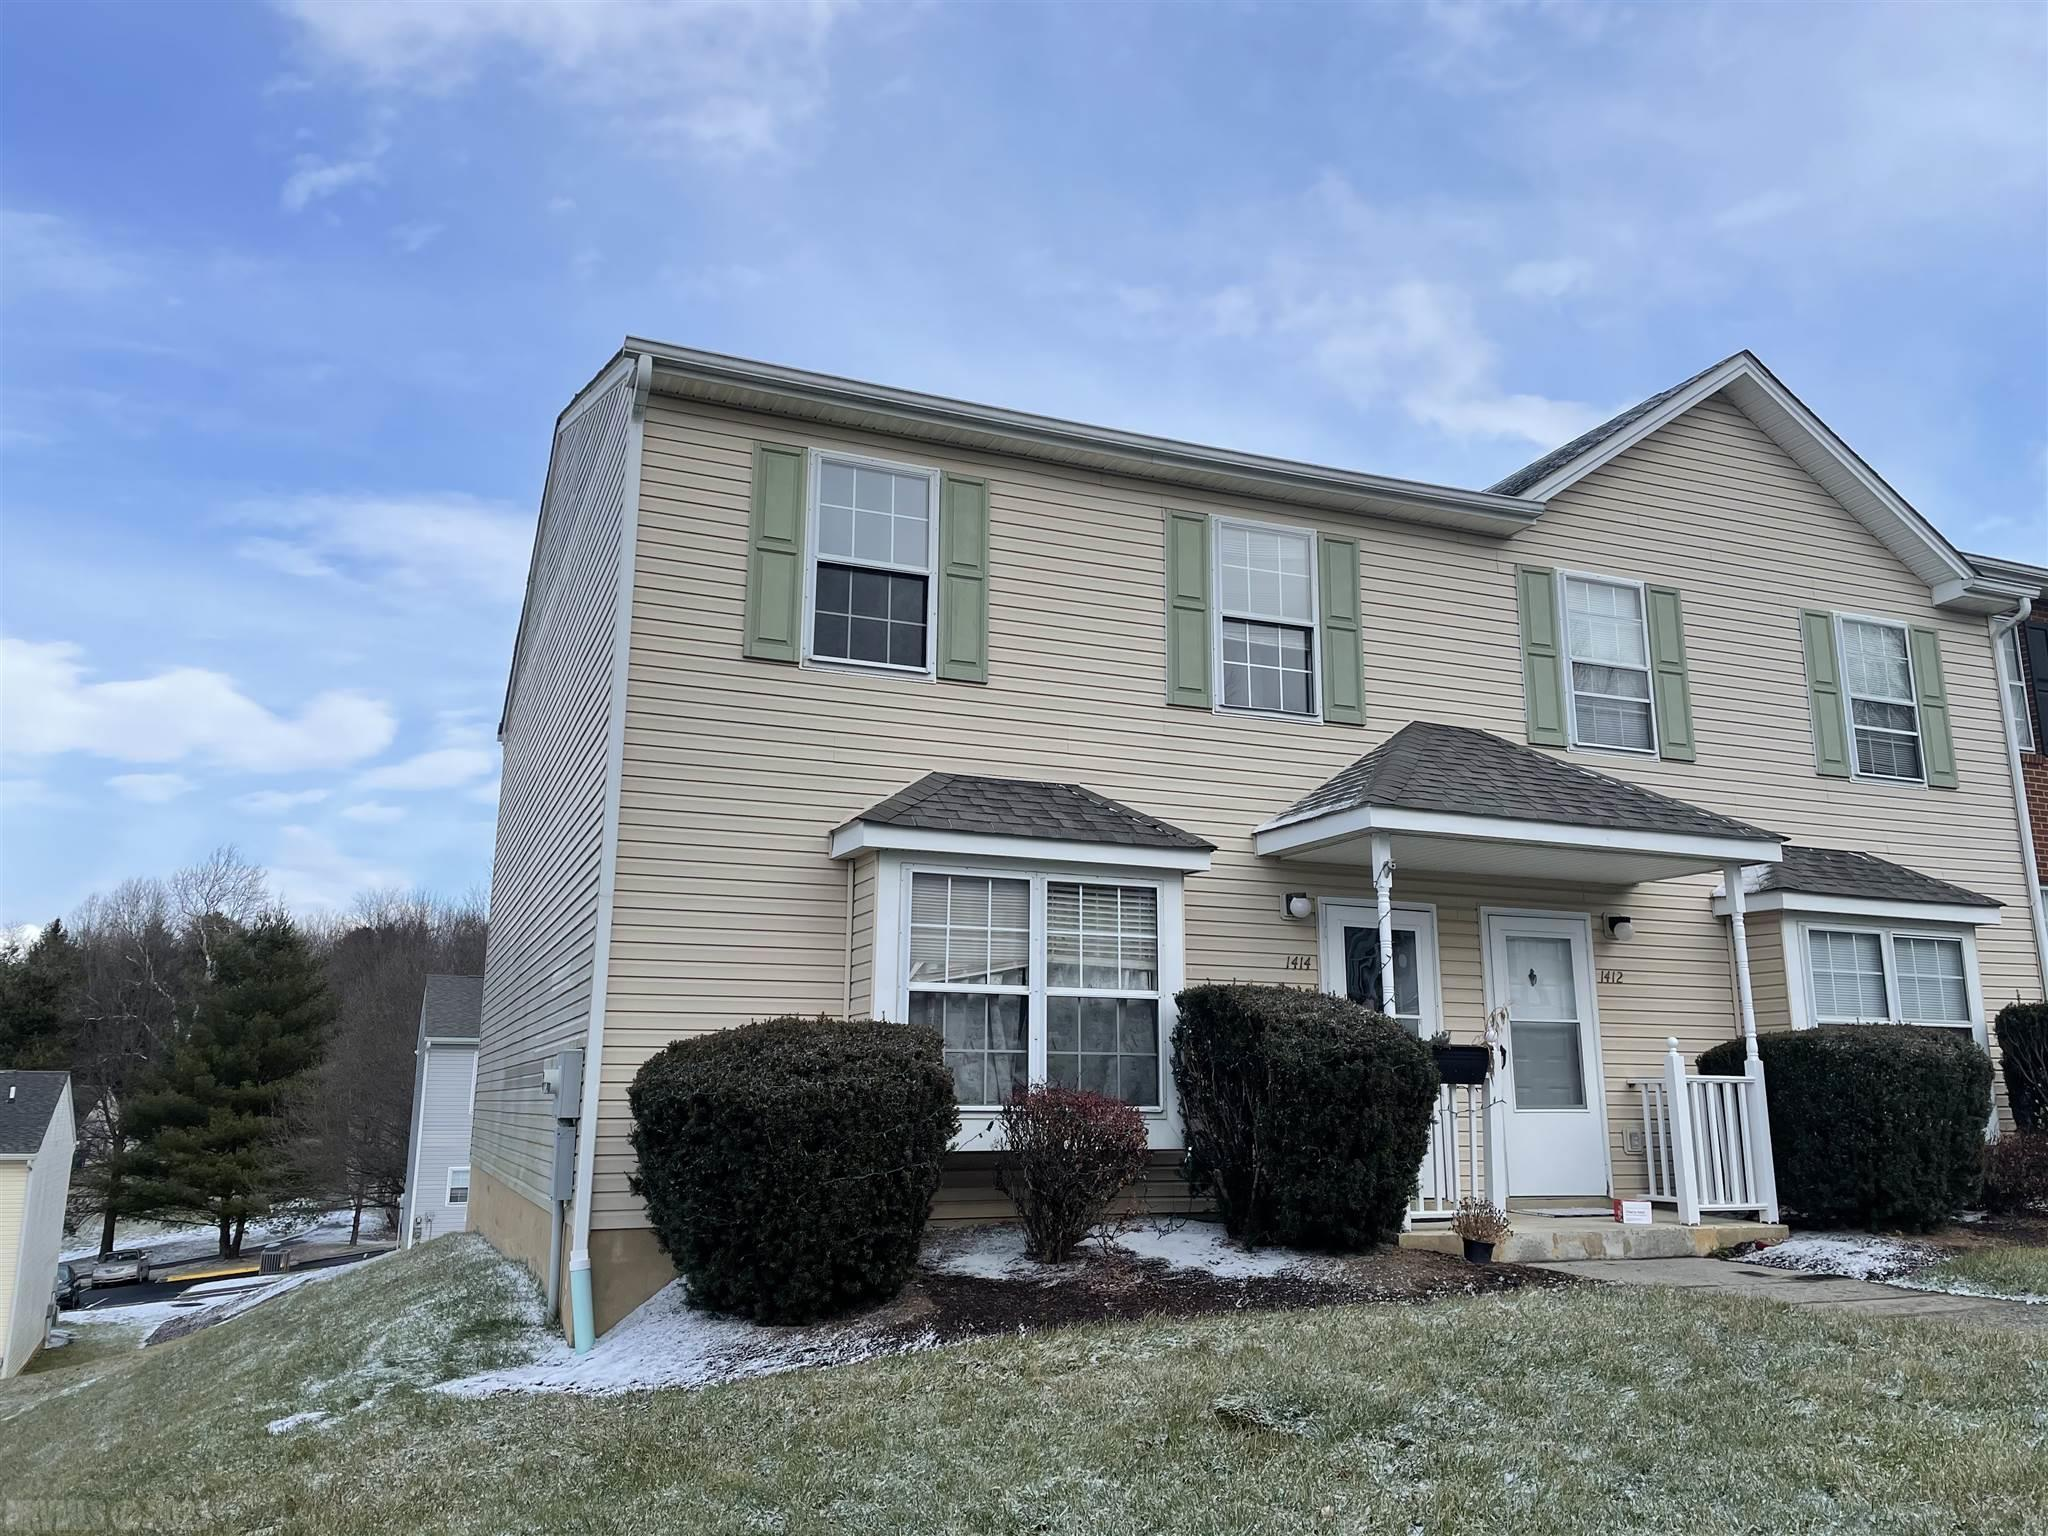 This 4 bedrooms, 2.5 bathrooms, home is great for anyone looking for supplemental income or just a place close to Virginia Tech. The main floor offers an open floor plan with room for entertainment.  Or entertain in the kitchen with the passthrough window into the dining room and kitchen.  Use the chalkboard to leave messages for other house guests or to remind yourself of an important task.